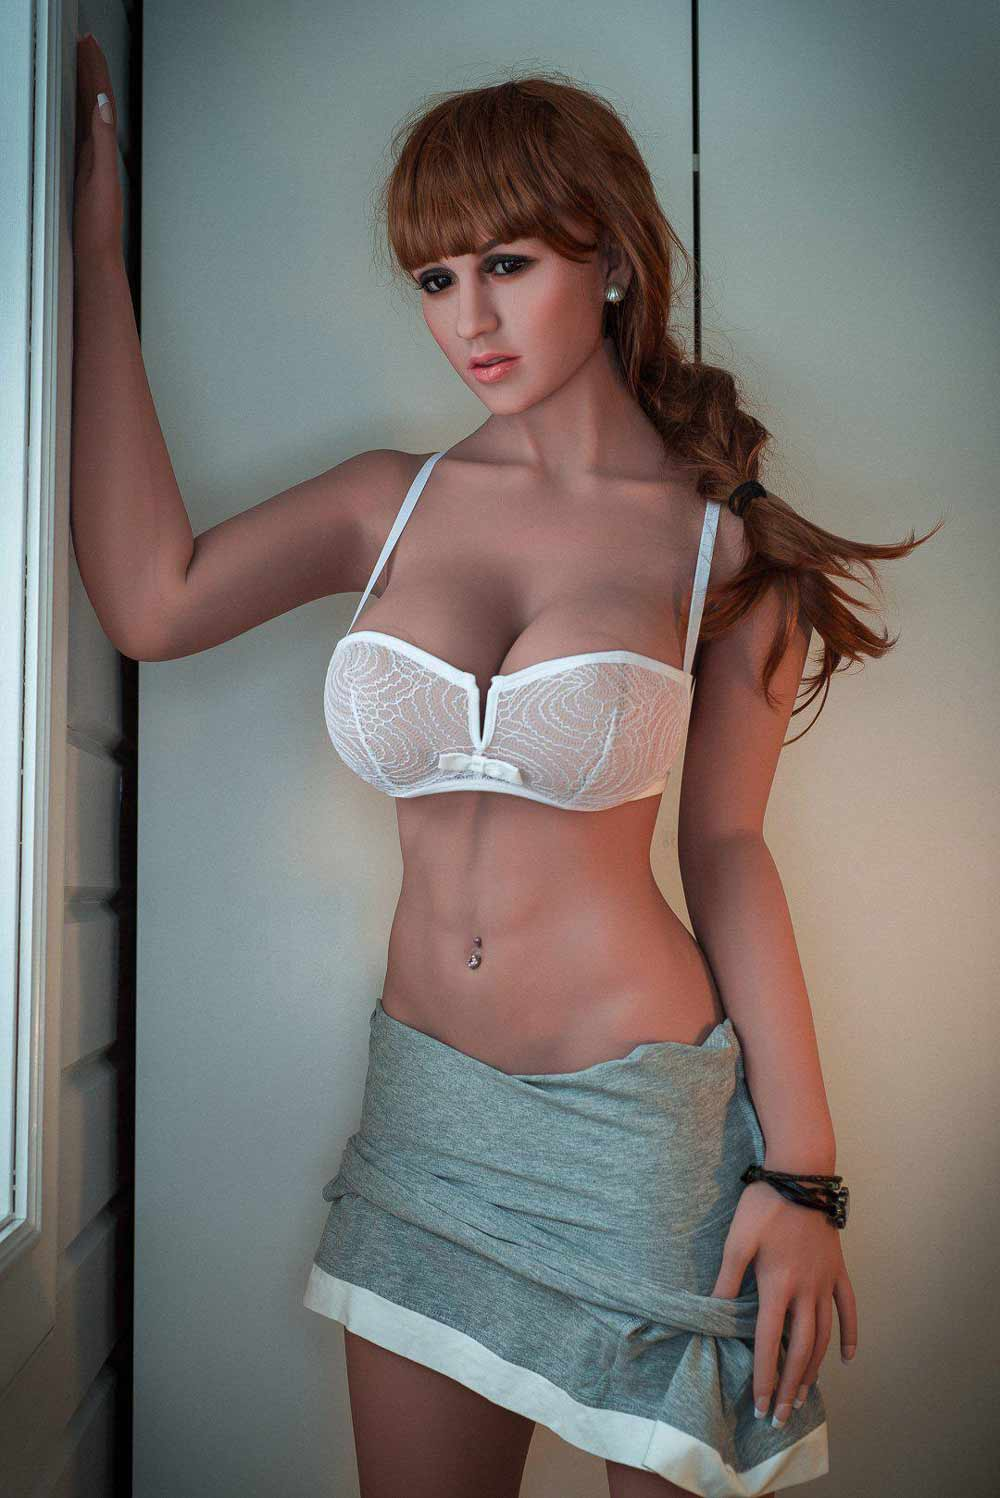 Sex doll with hands on the window